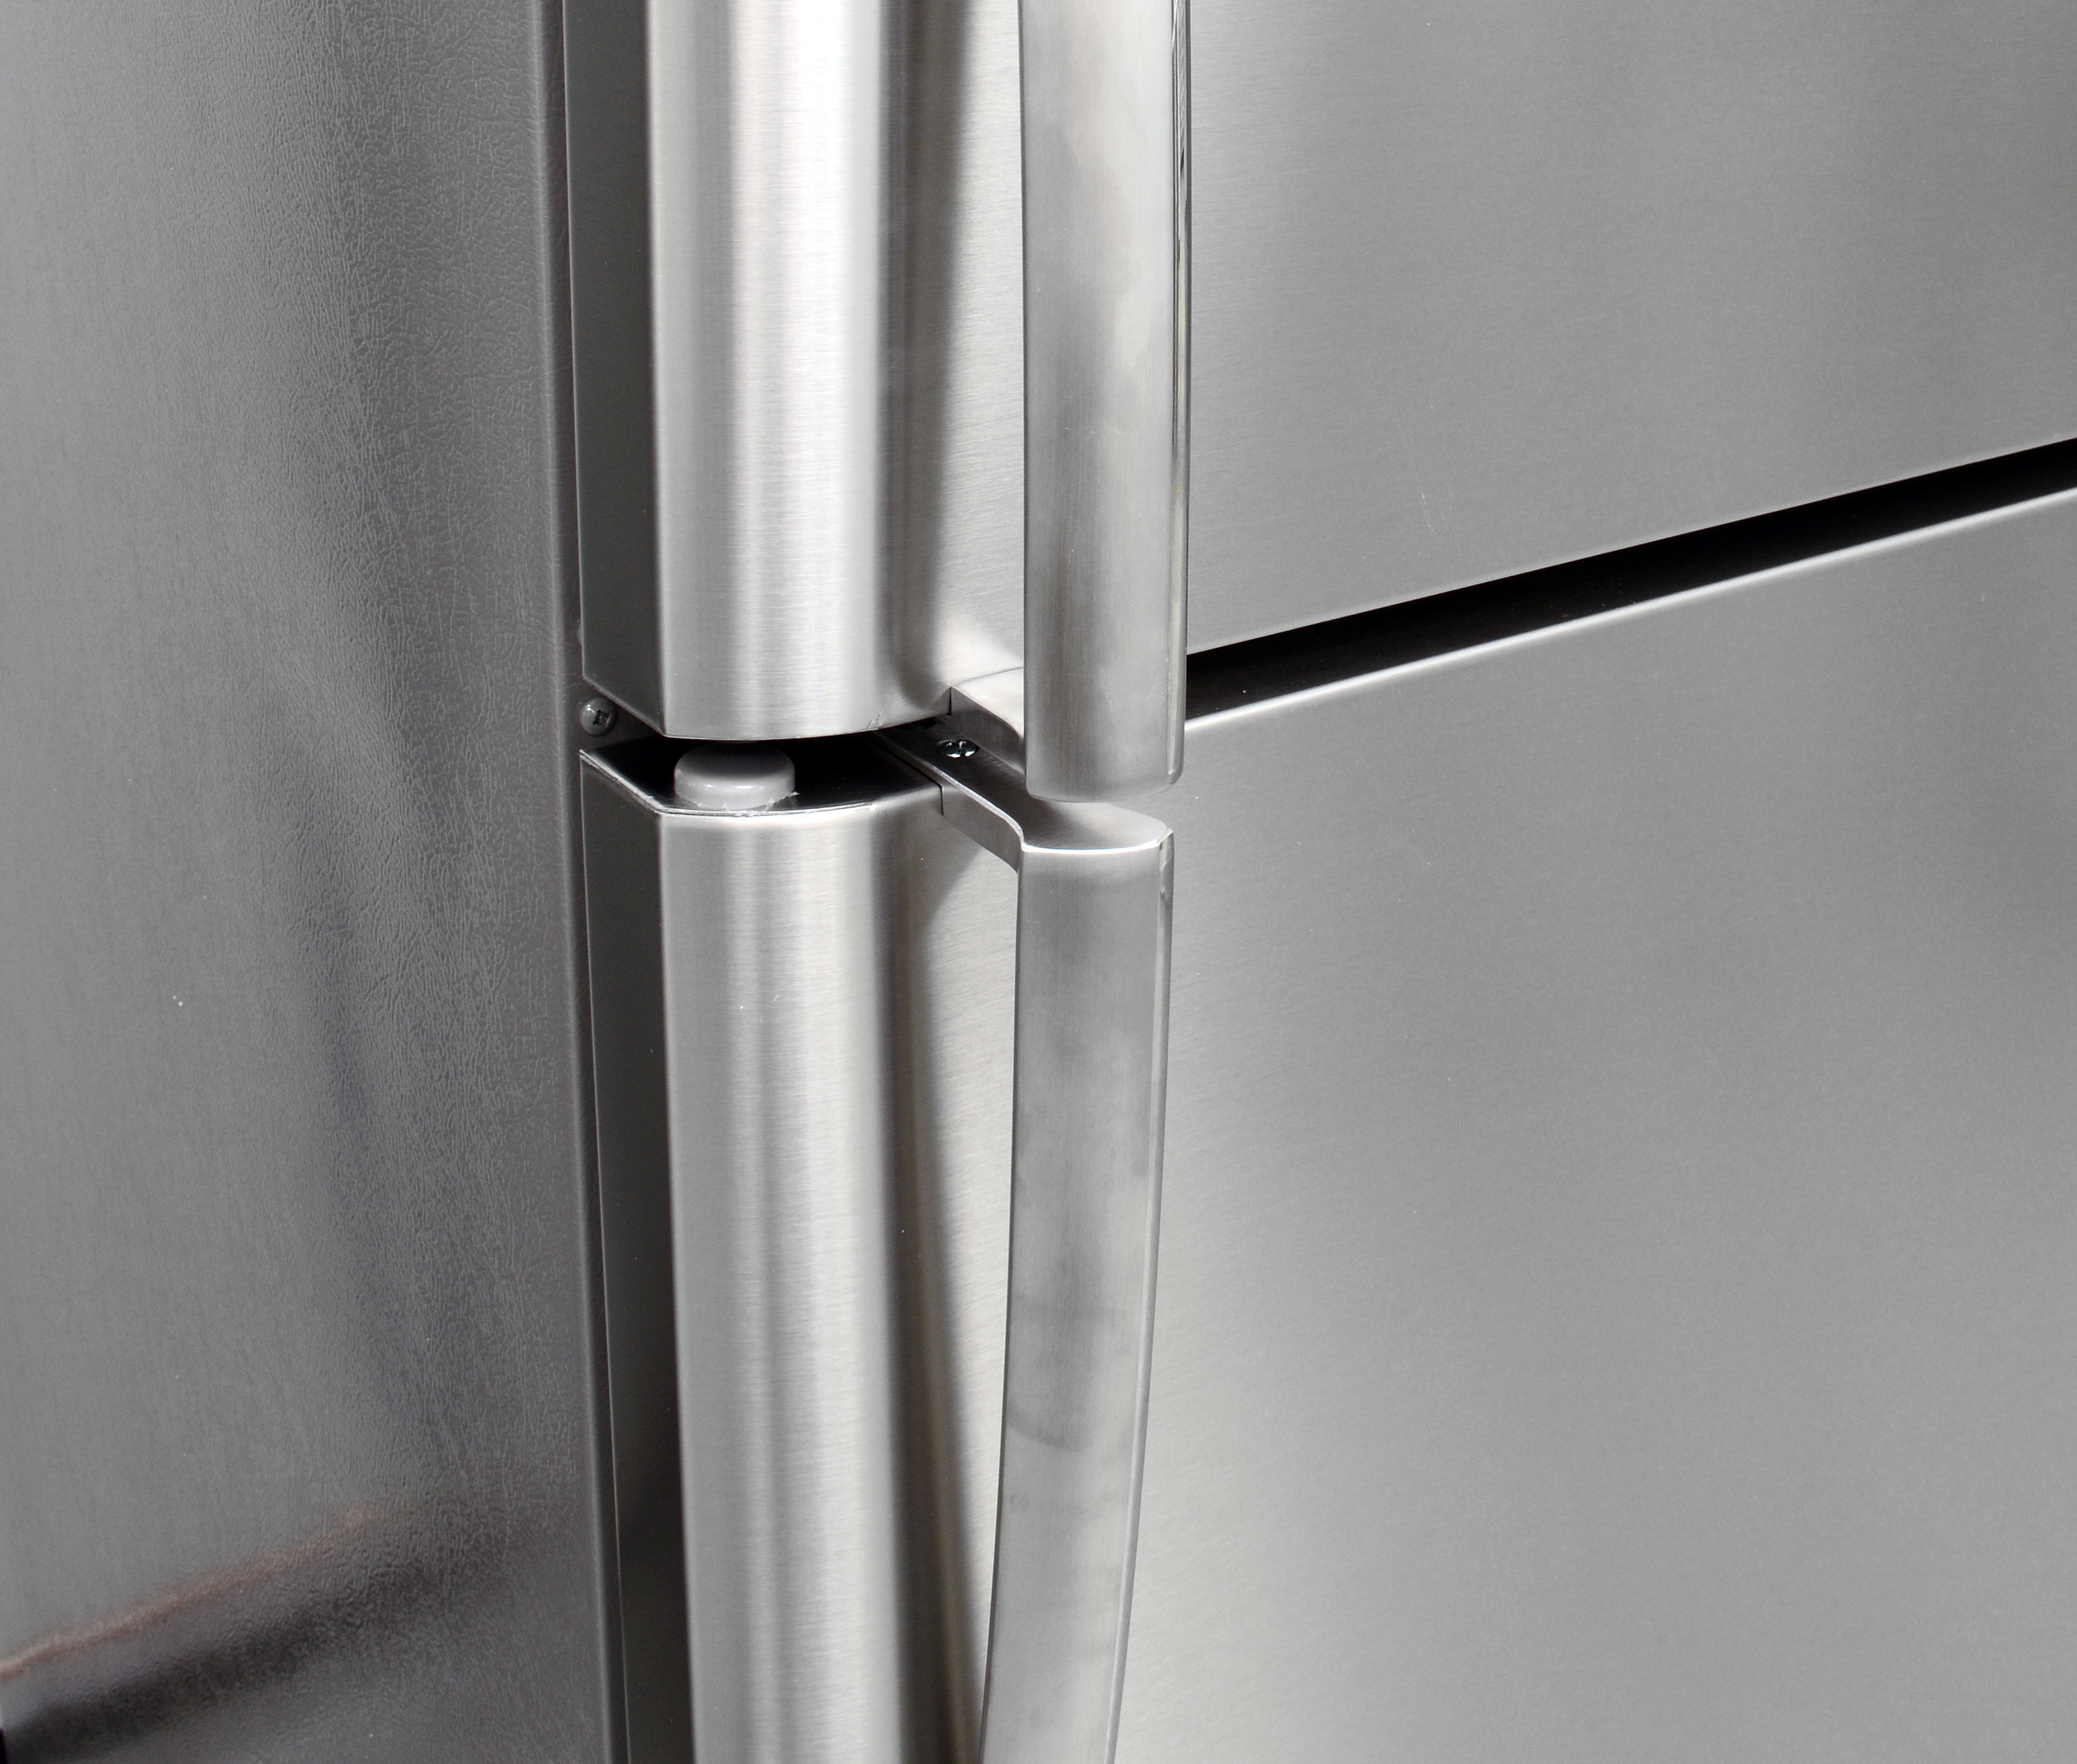 The Frigidaire Gallery FGTR1845QF's handles are comfortable to grip, but the smudge-proof finish may look slightly darker next to regular stainless products.